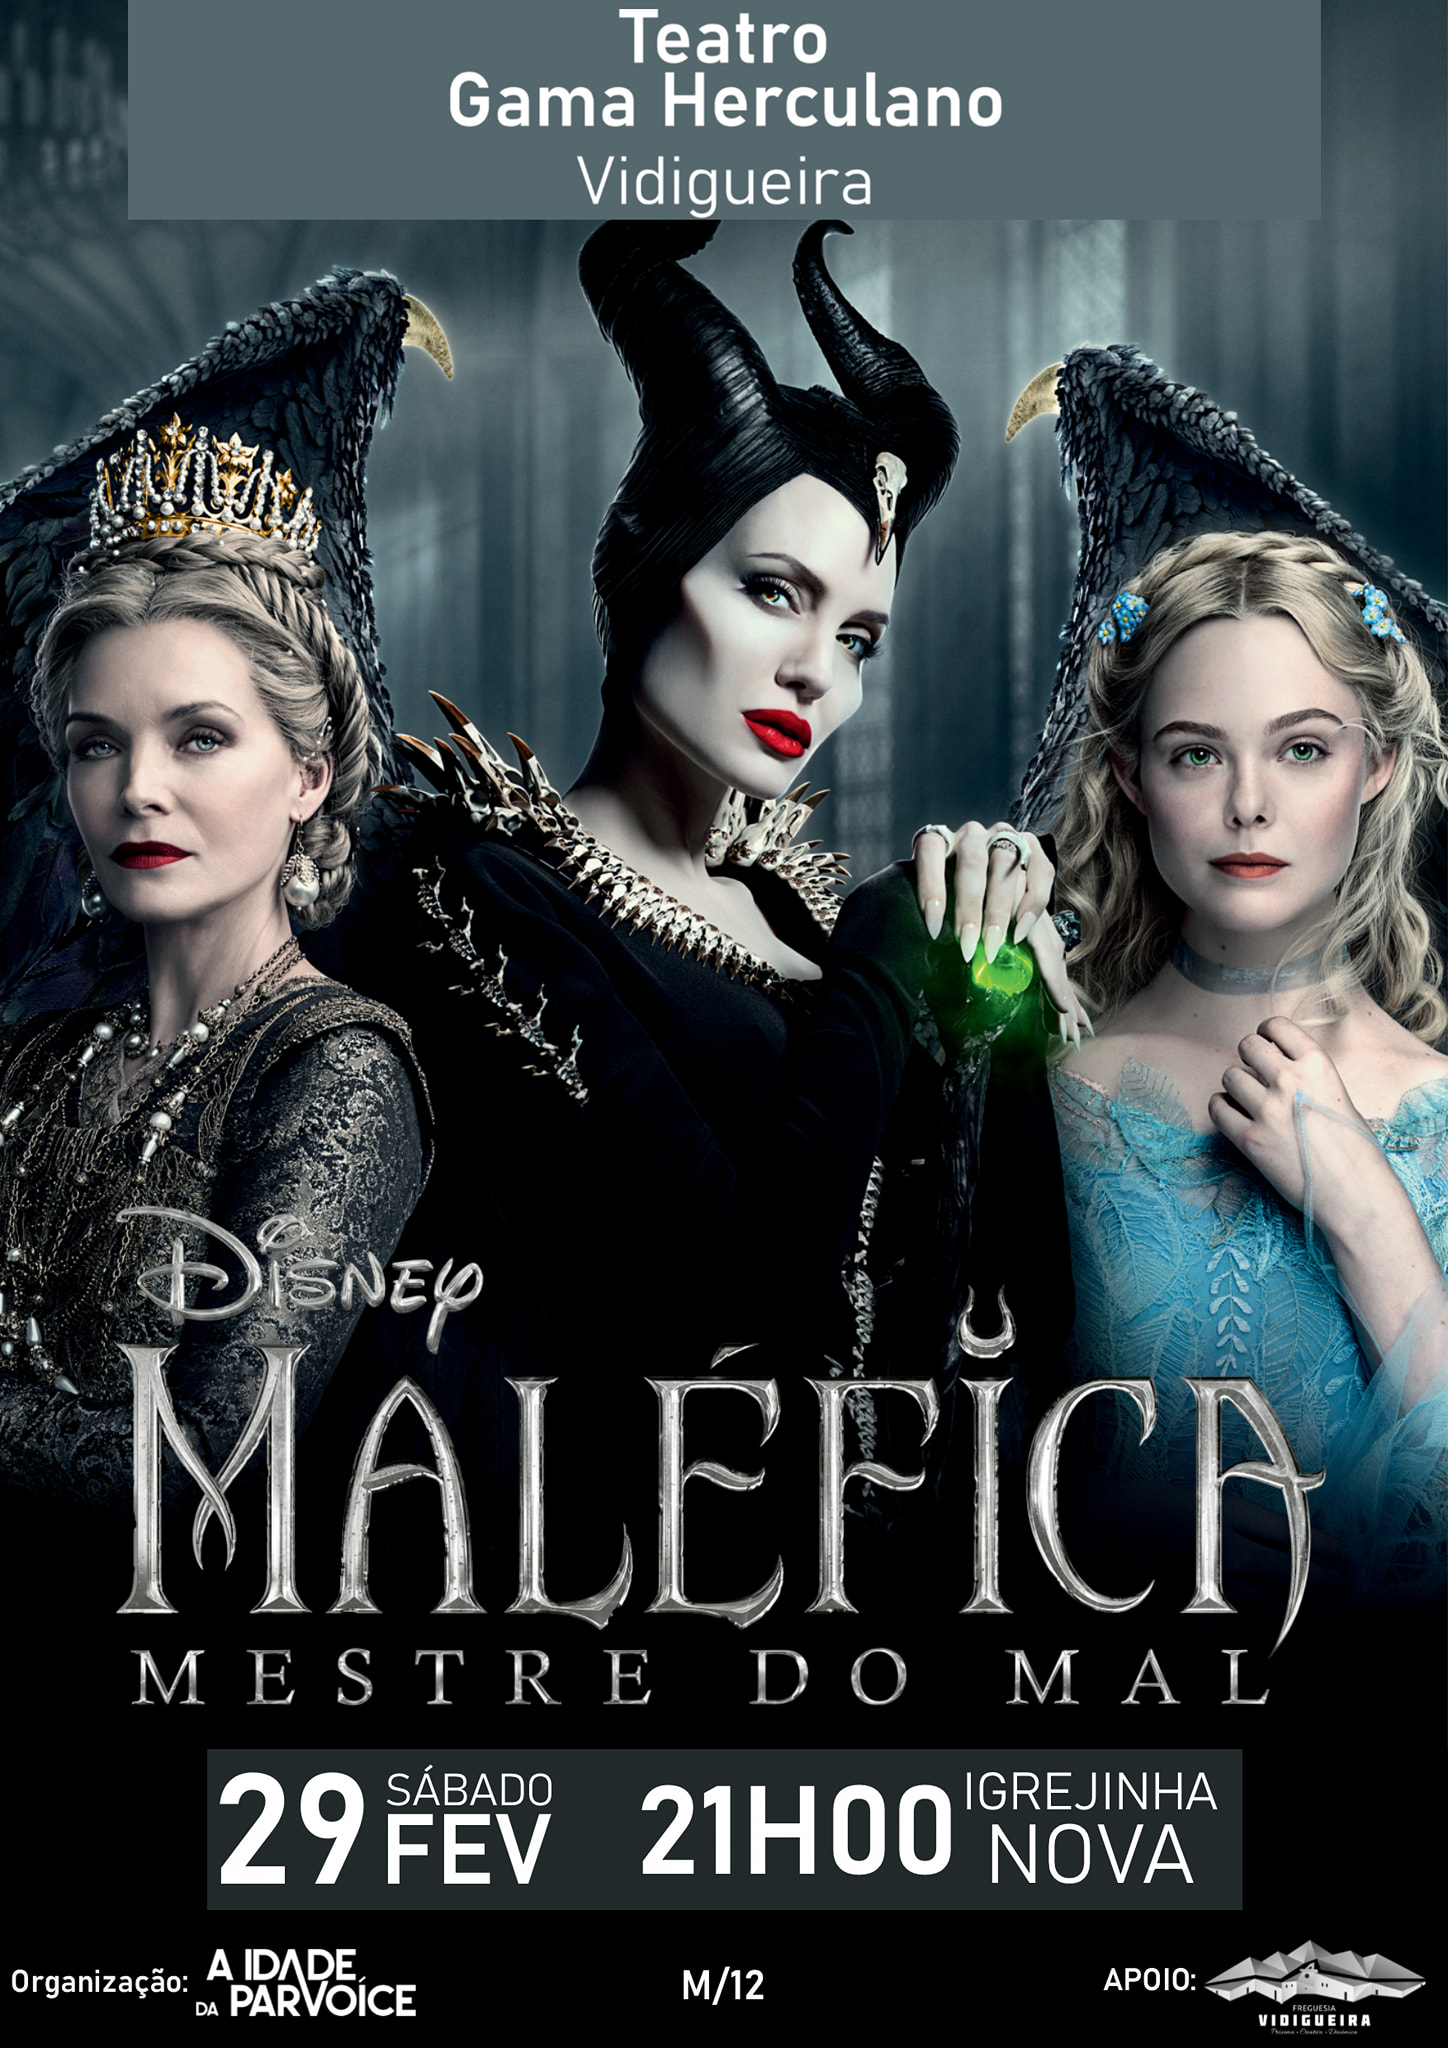 Cartaz do Filme: Maléfica, Mestre do Mal